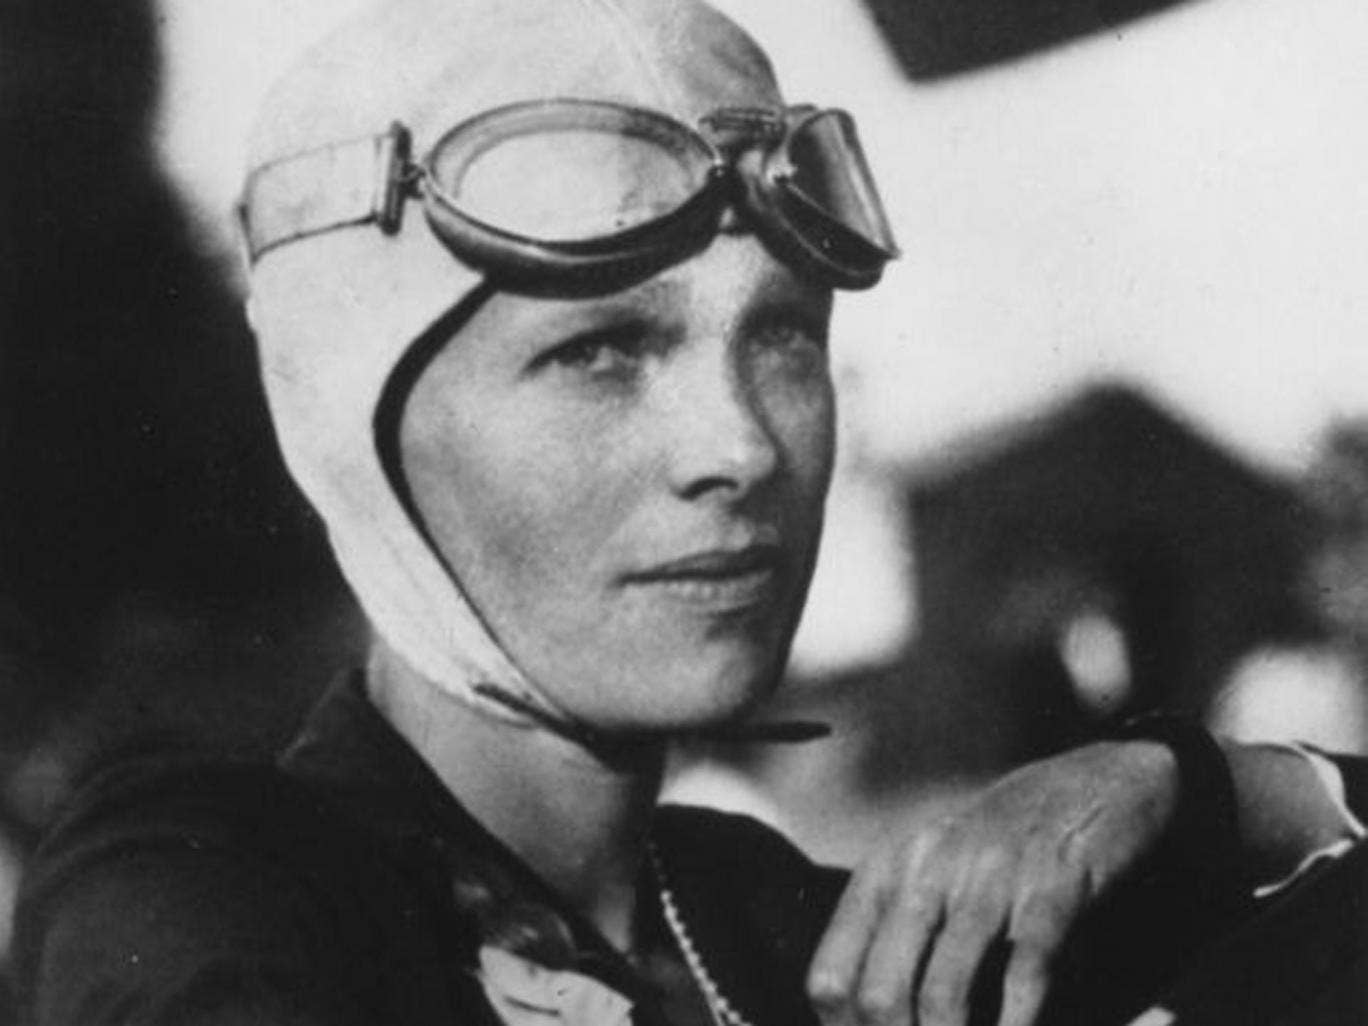 An undated file photo shows Amelia Earhart, the first woman to fly solo across the Atlantic Ocean (AP)